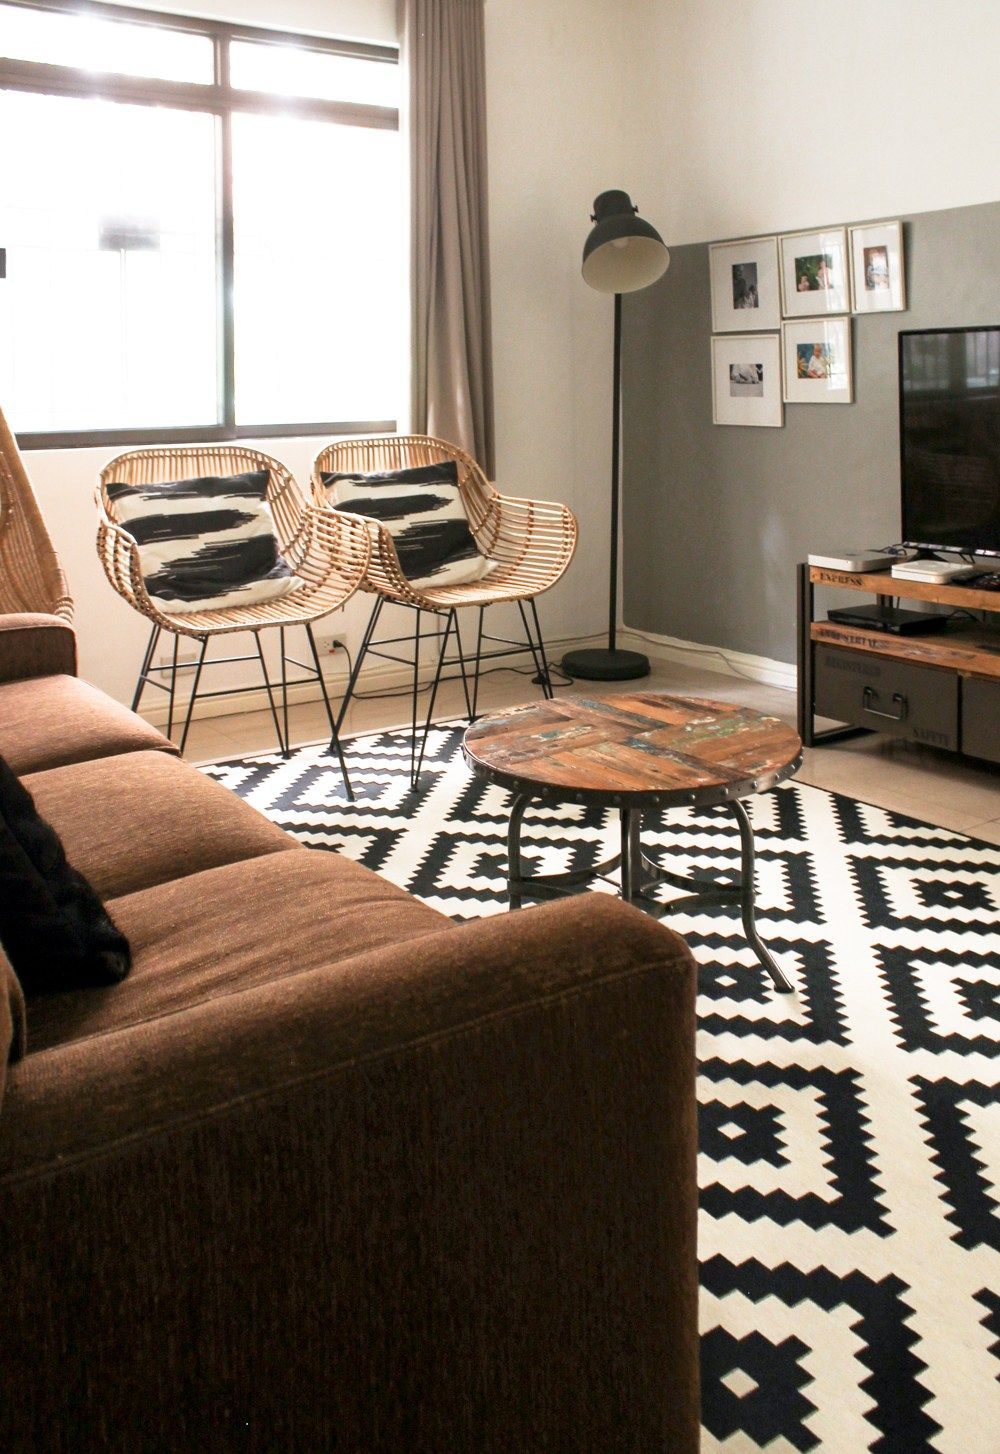 Black White With Wicker Furniture Family Room Wickerfurniture Rattan Ikea Hm Brown Living Room Decor Black And Cream Living Room White Carpet Living Room Black white and brown living room